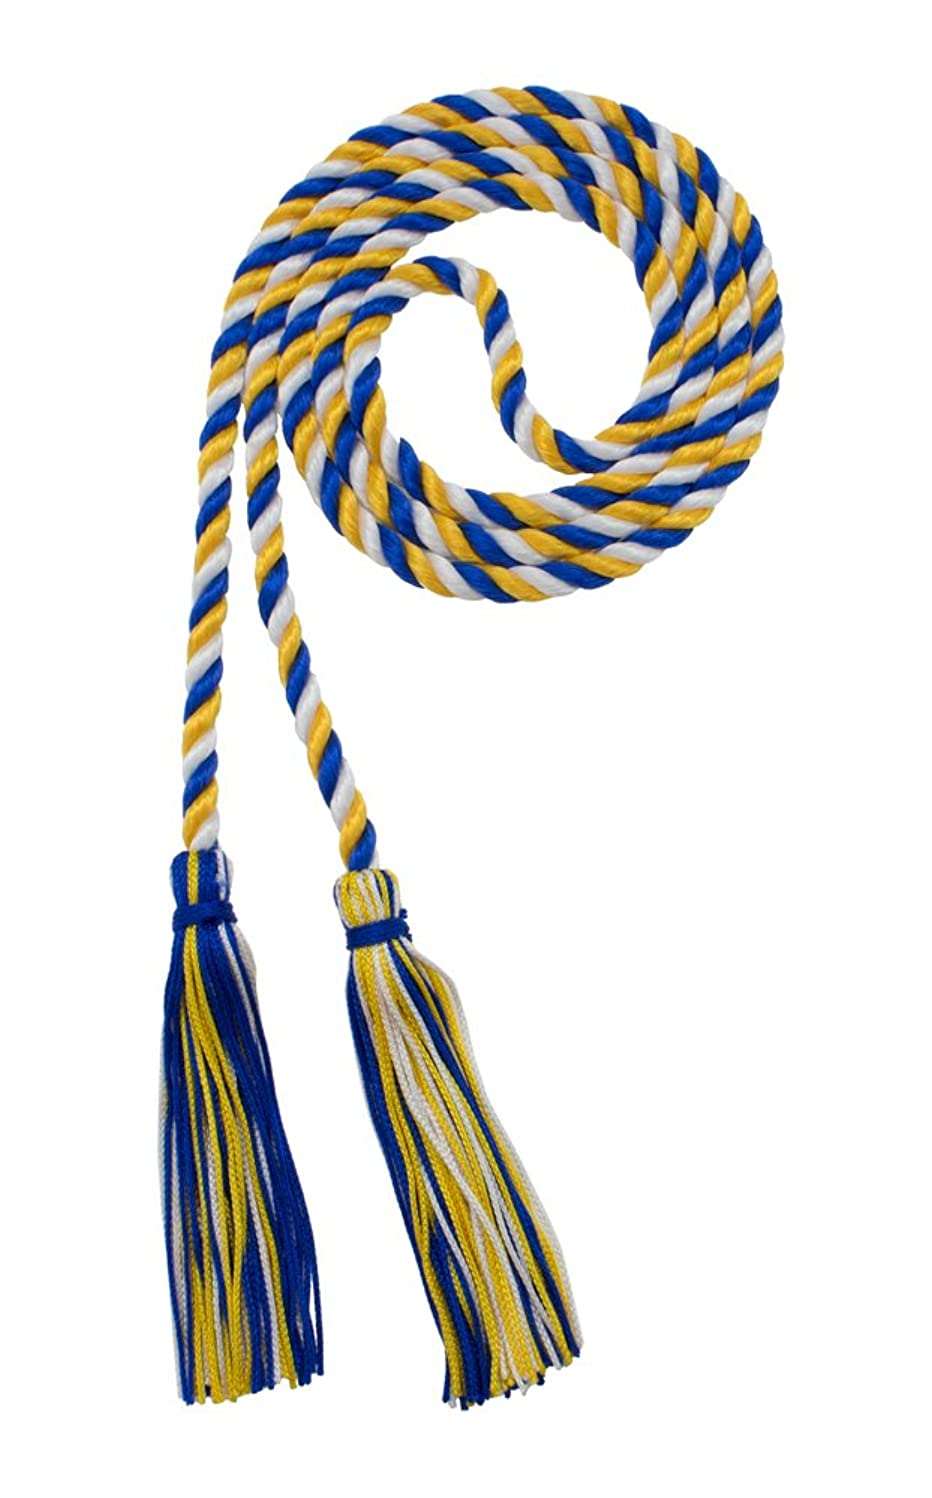 Tassel Depot HONOR CORD ROYAL/GOLD / WHITE BRAND - MADE IN USA